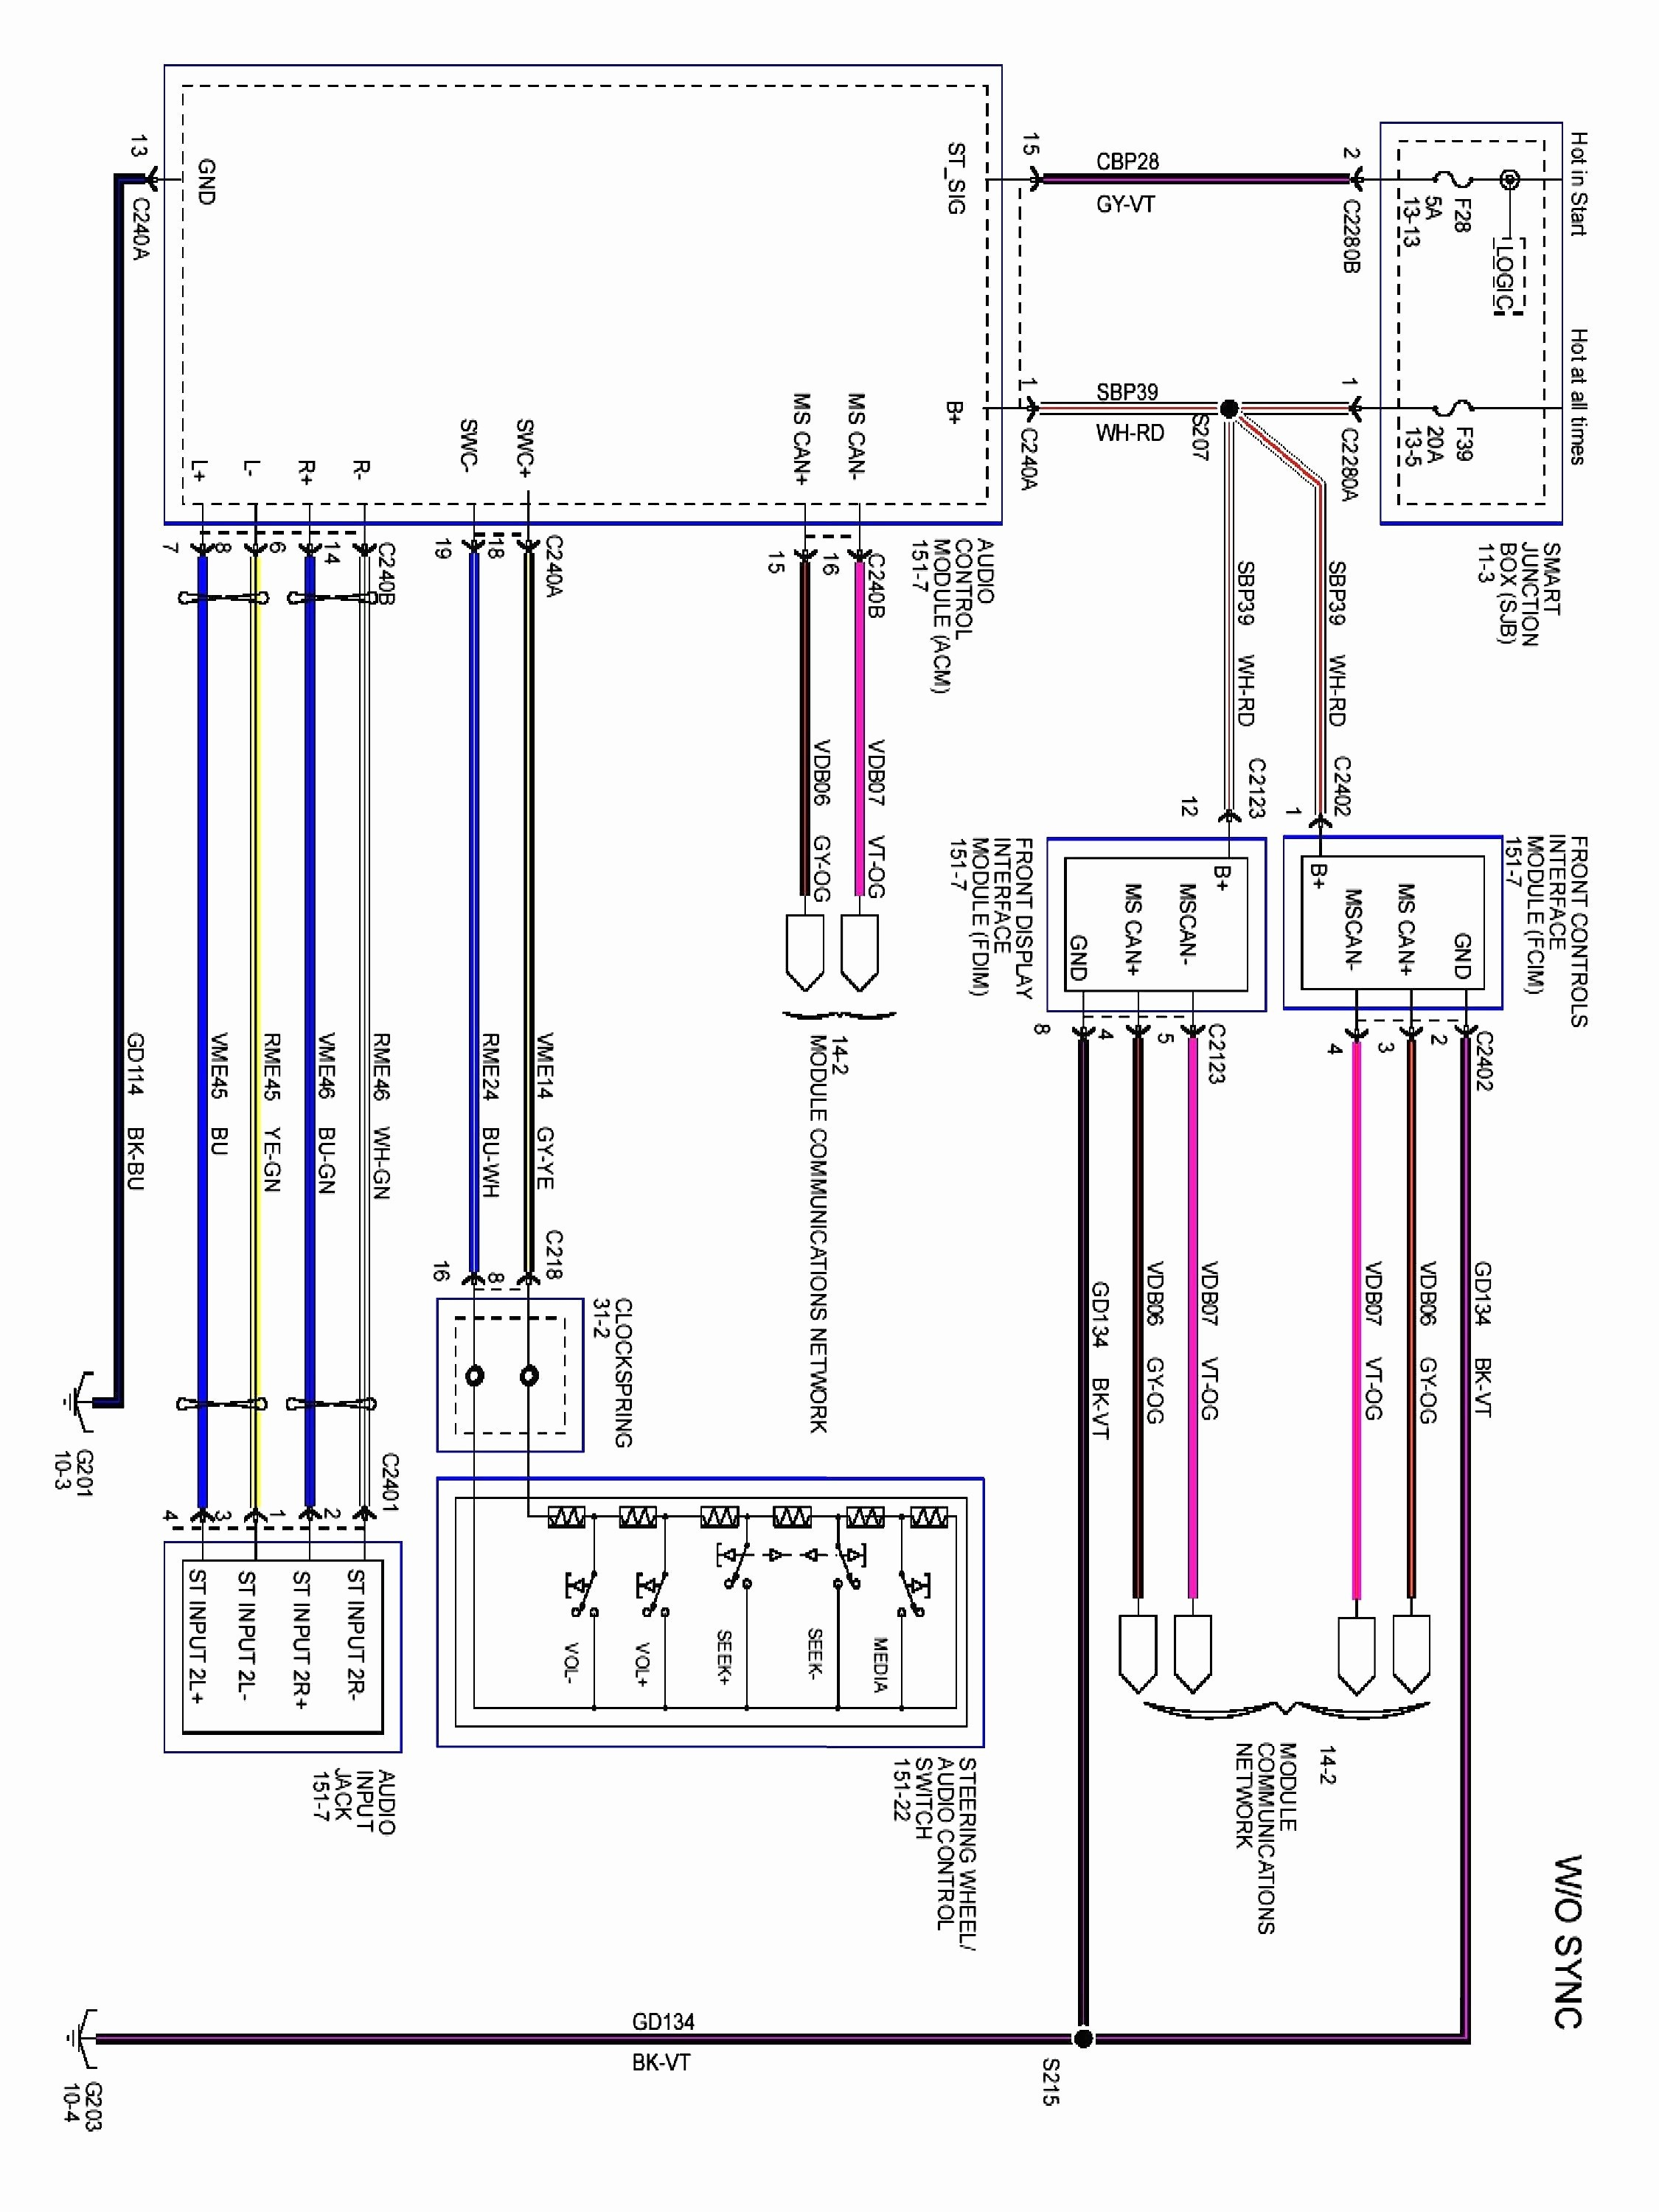 Wiring Diagram for Amplifier Car Stereo Best Amplifier Wiring Car sound Wiring Diagram Sample